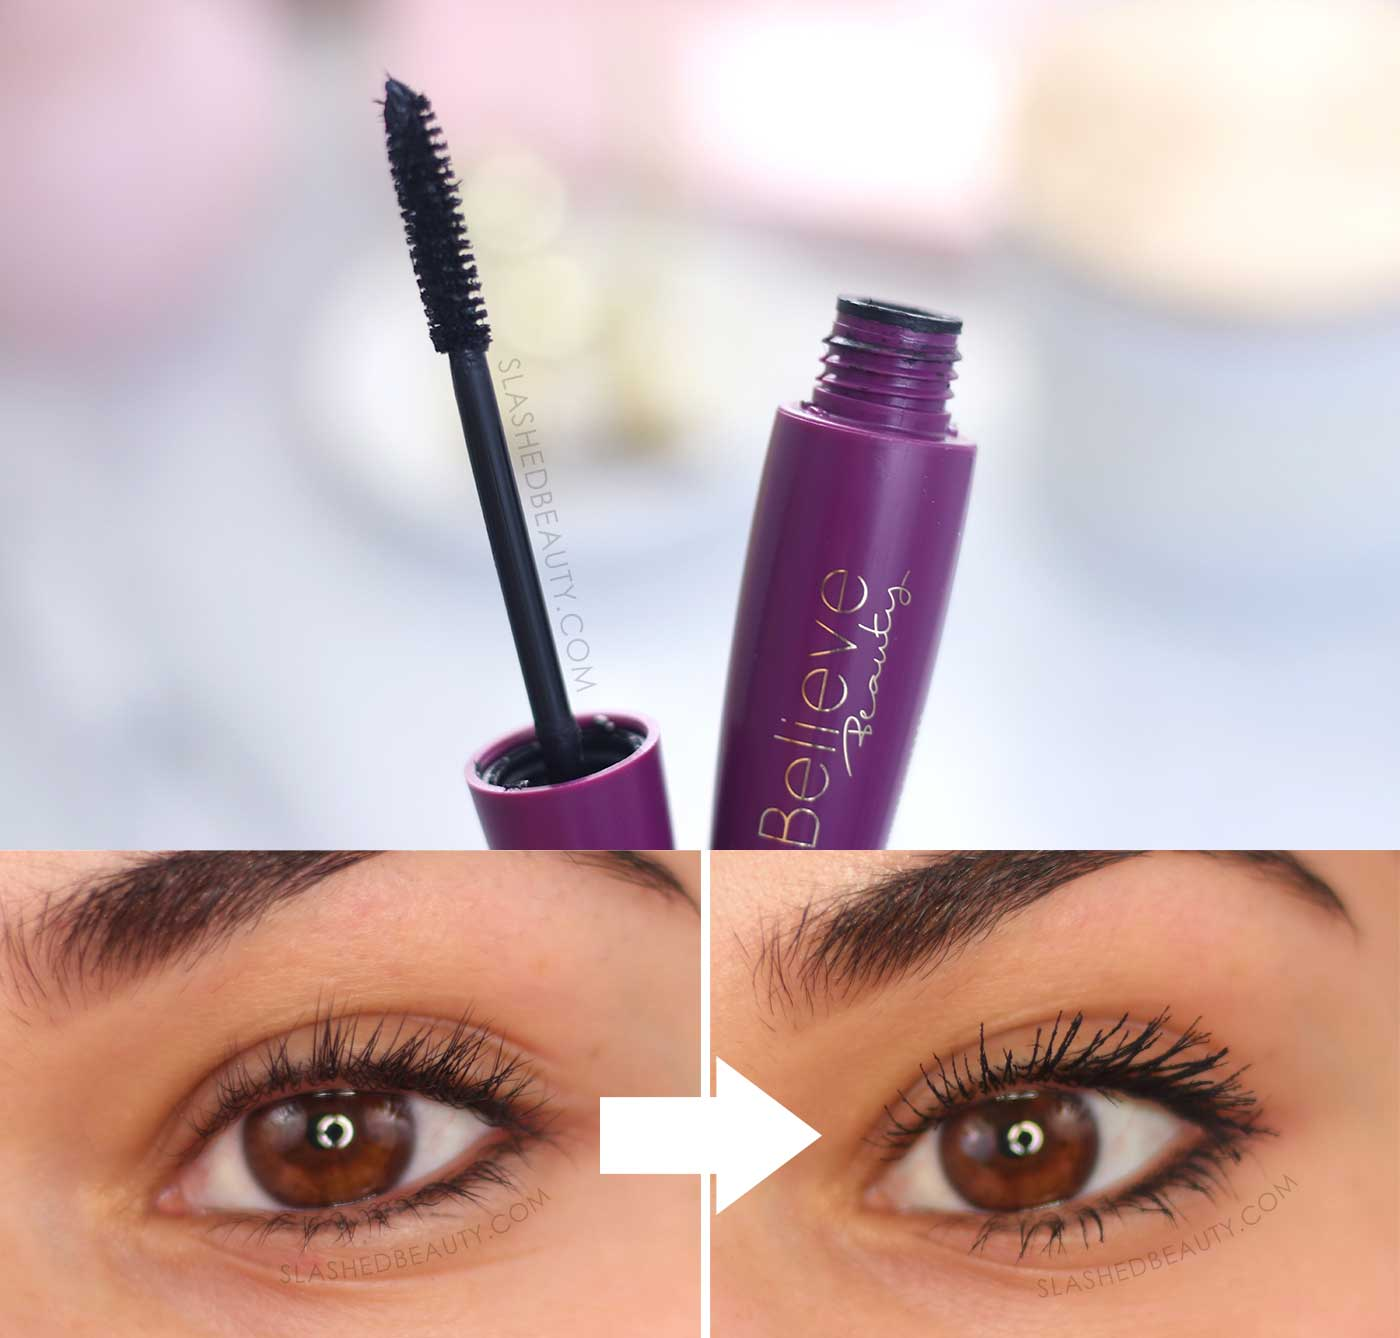 Believe Beauty High Drama Fiber Mascara Before & After Review | 5 Best Drugstore Mascaras in 2020 | Slashed Beauty